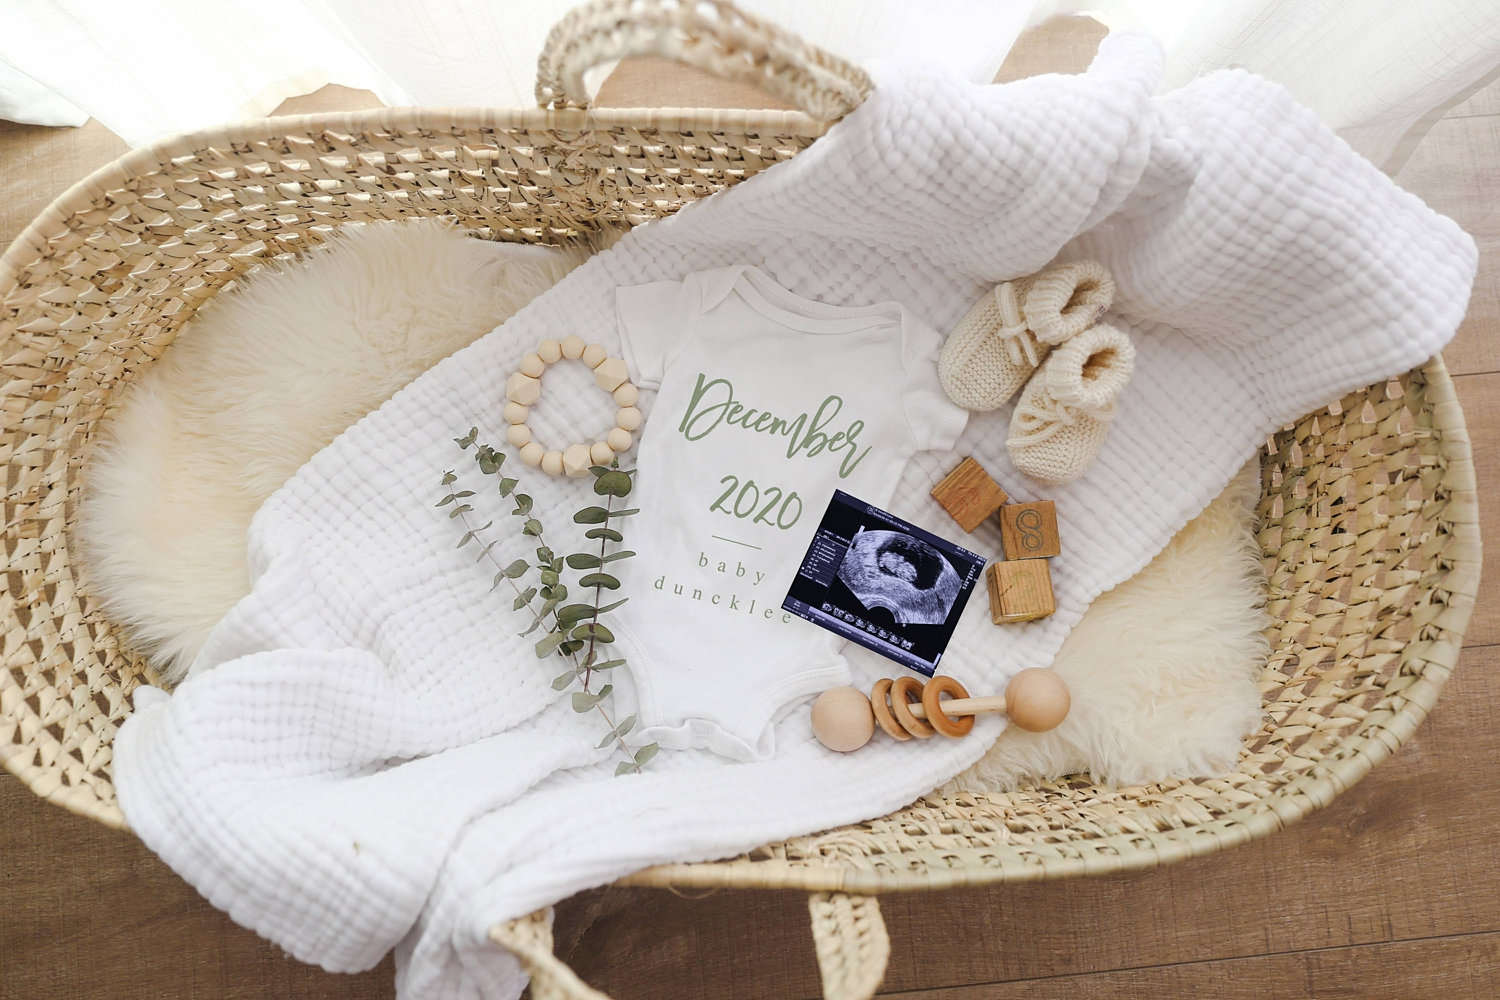 December 2020 baby announcement, Moses basket, muslin blanket, eucalyptus, sweet baby announcement